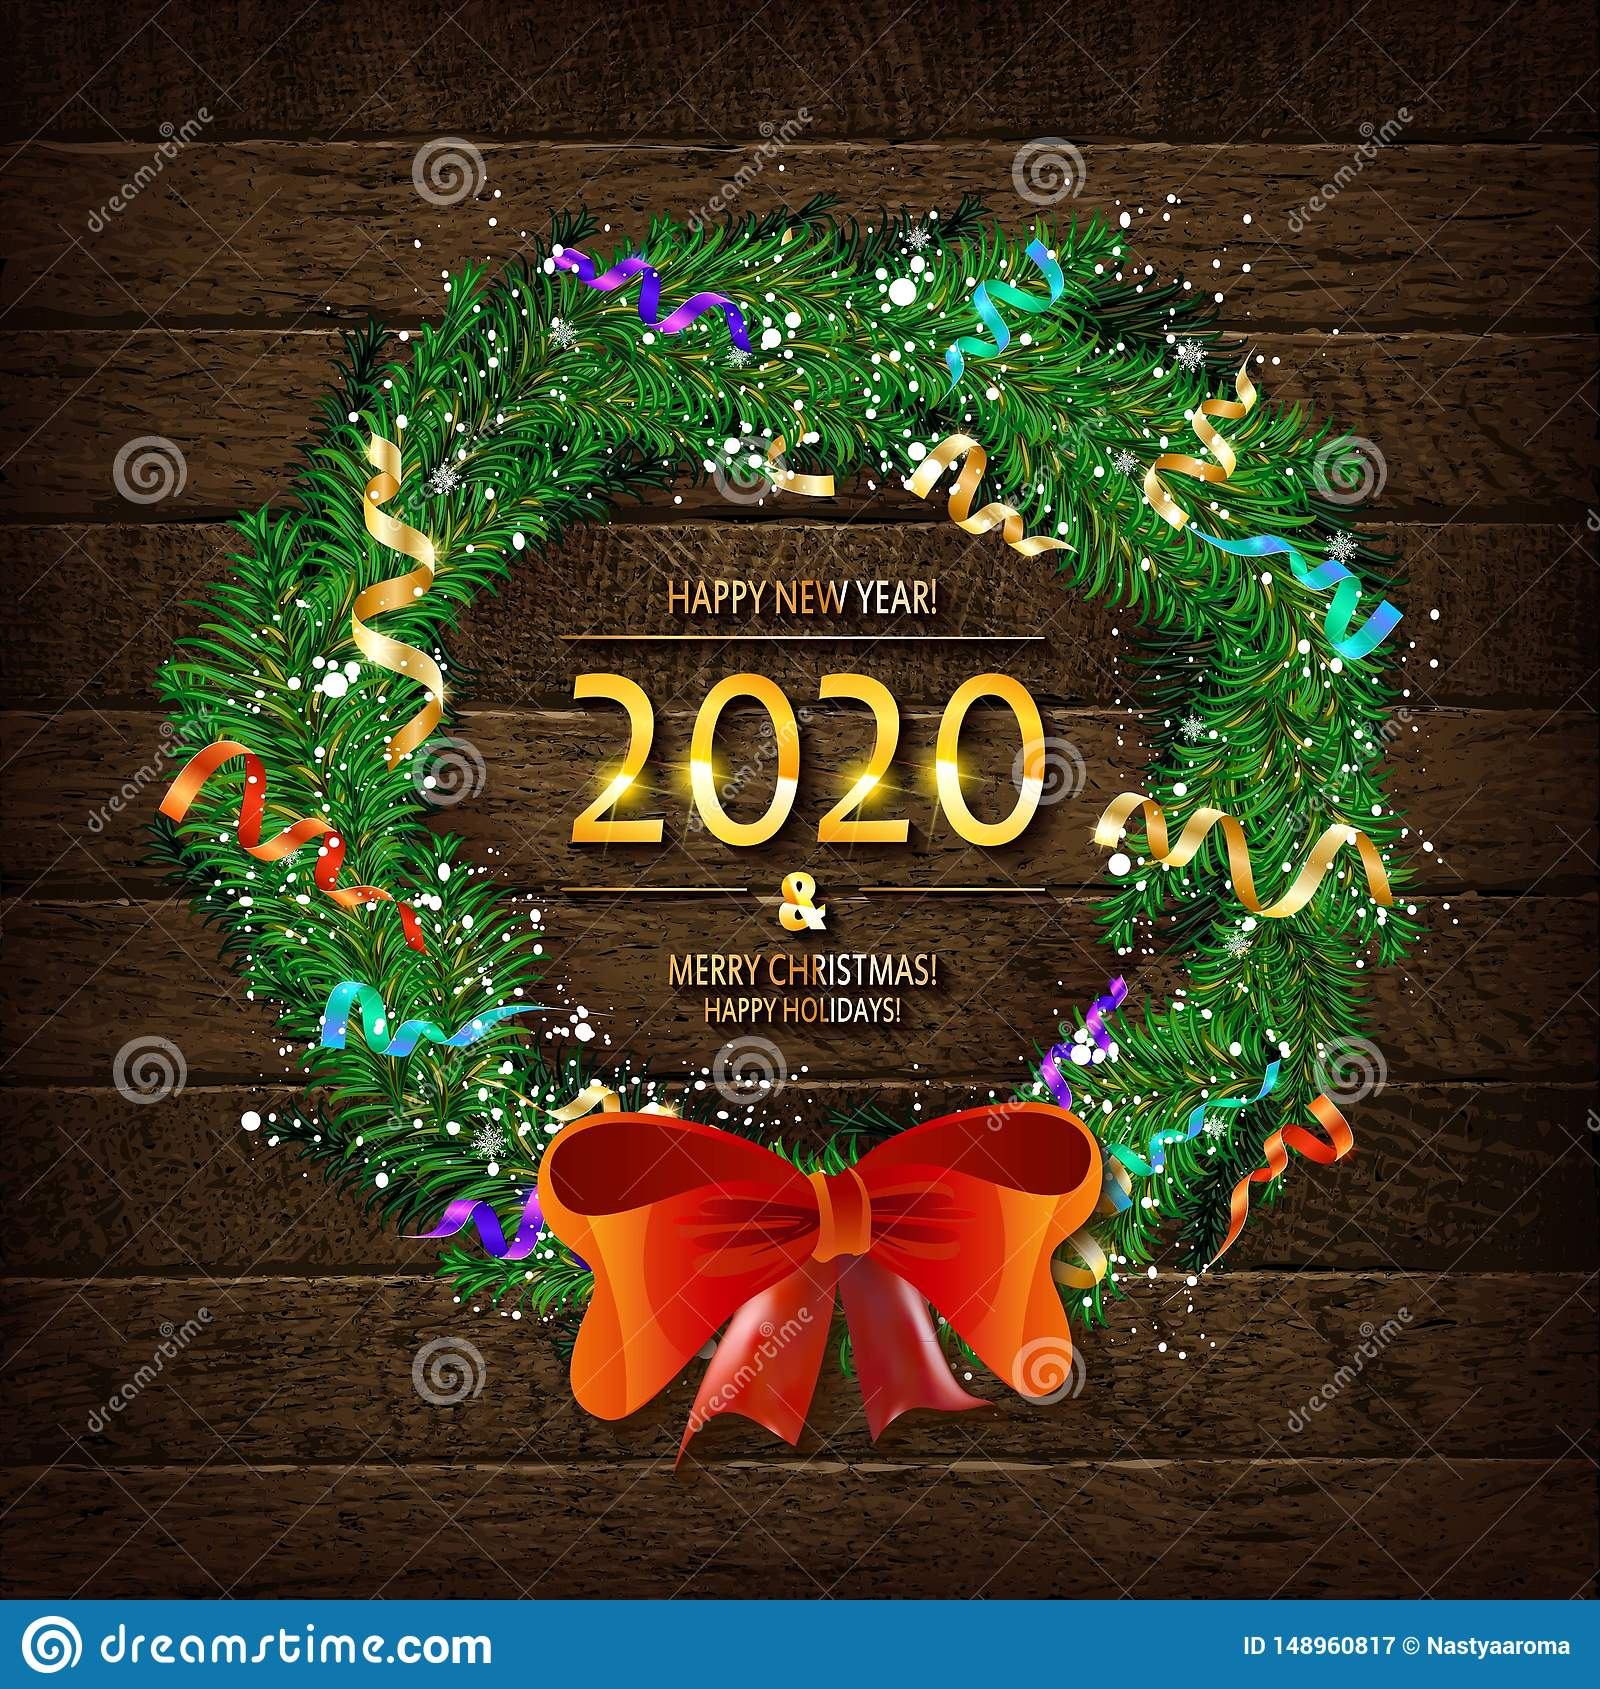 merry christmas and happy new year 2020 stock illustration illustration of golden frame 148960817 https www dreamstime com merry christmas happy new year merry christmas happy new year background christmas wreath snow fir cones tangerines image148960817